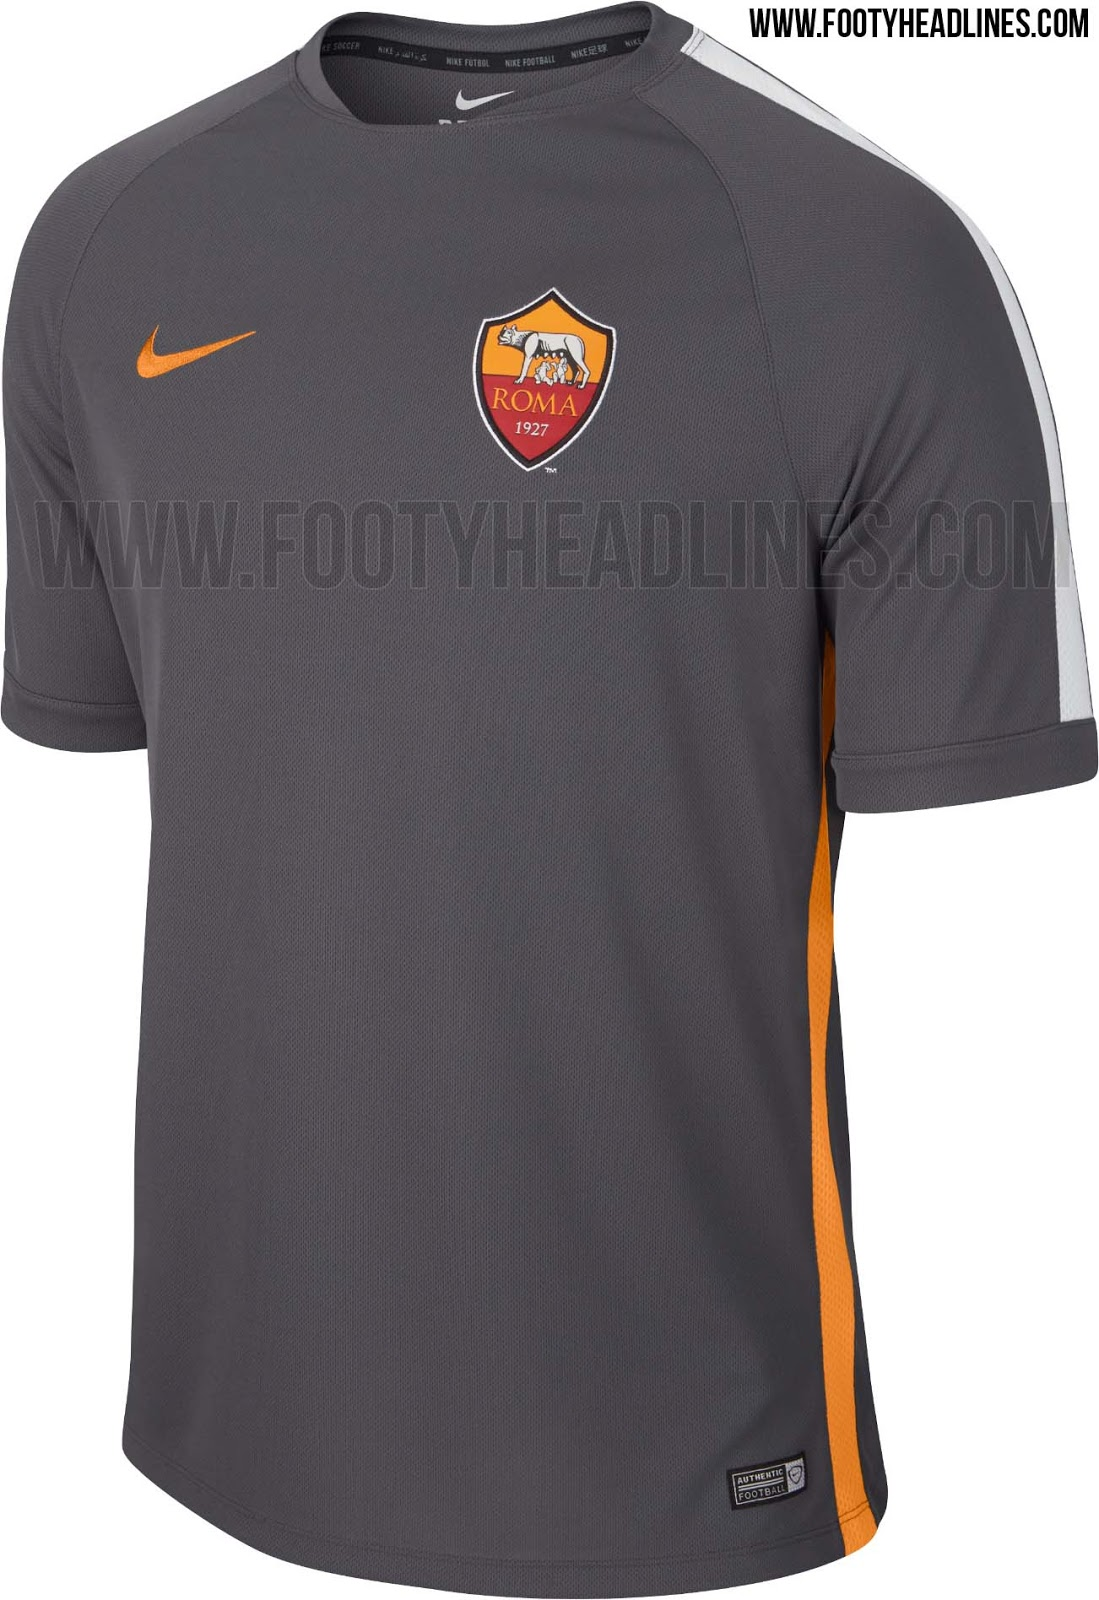 Shirt new design 2015 - The New Dark Grey Nike As Roma 2015 Training Kit Features A Simple Design With An Orange Swoosh Based On The Nike Training Shirts Design